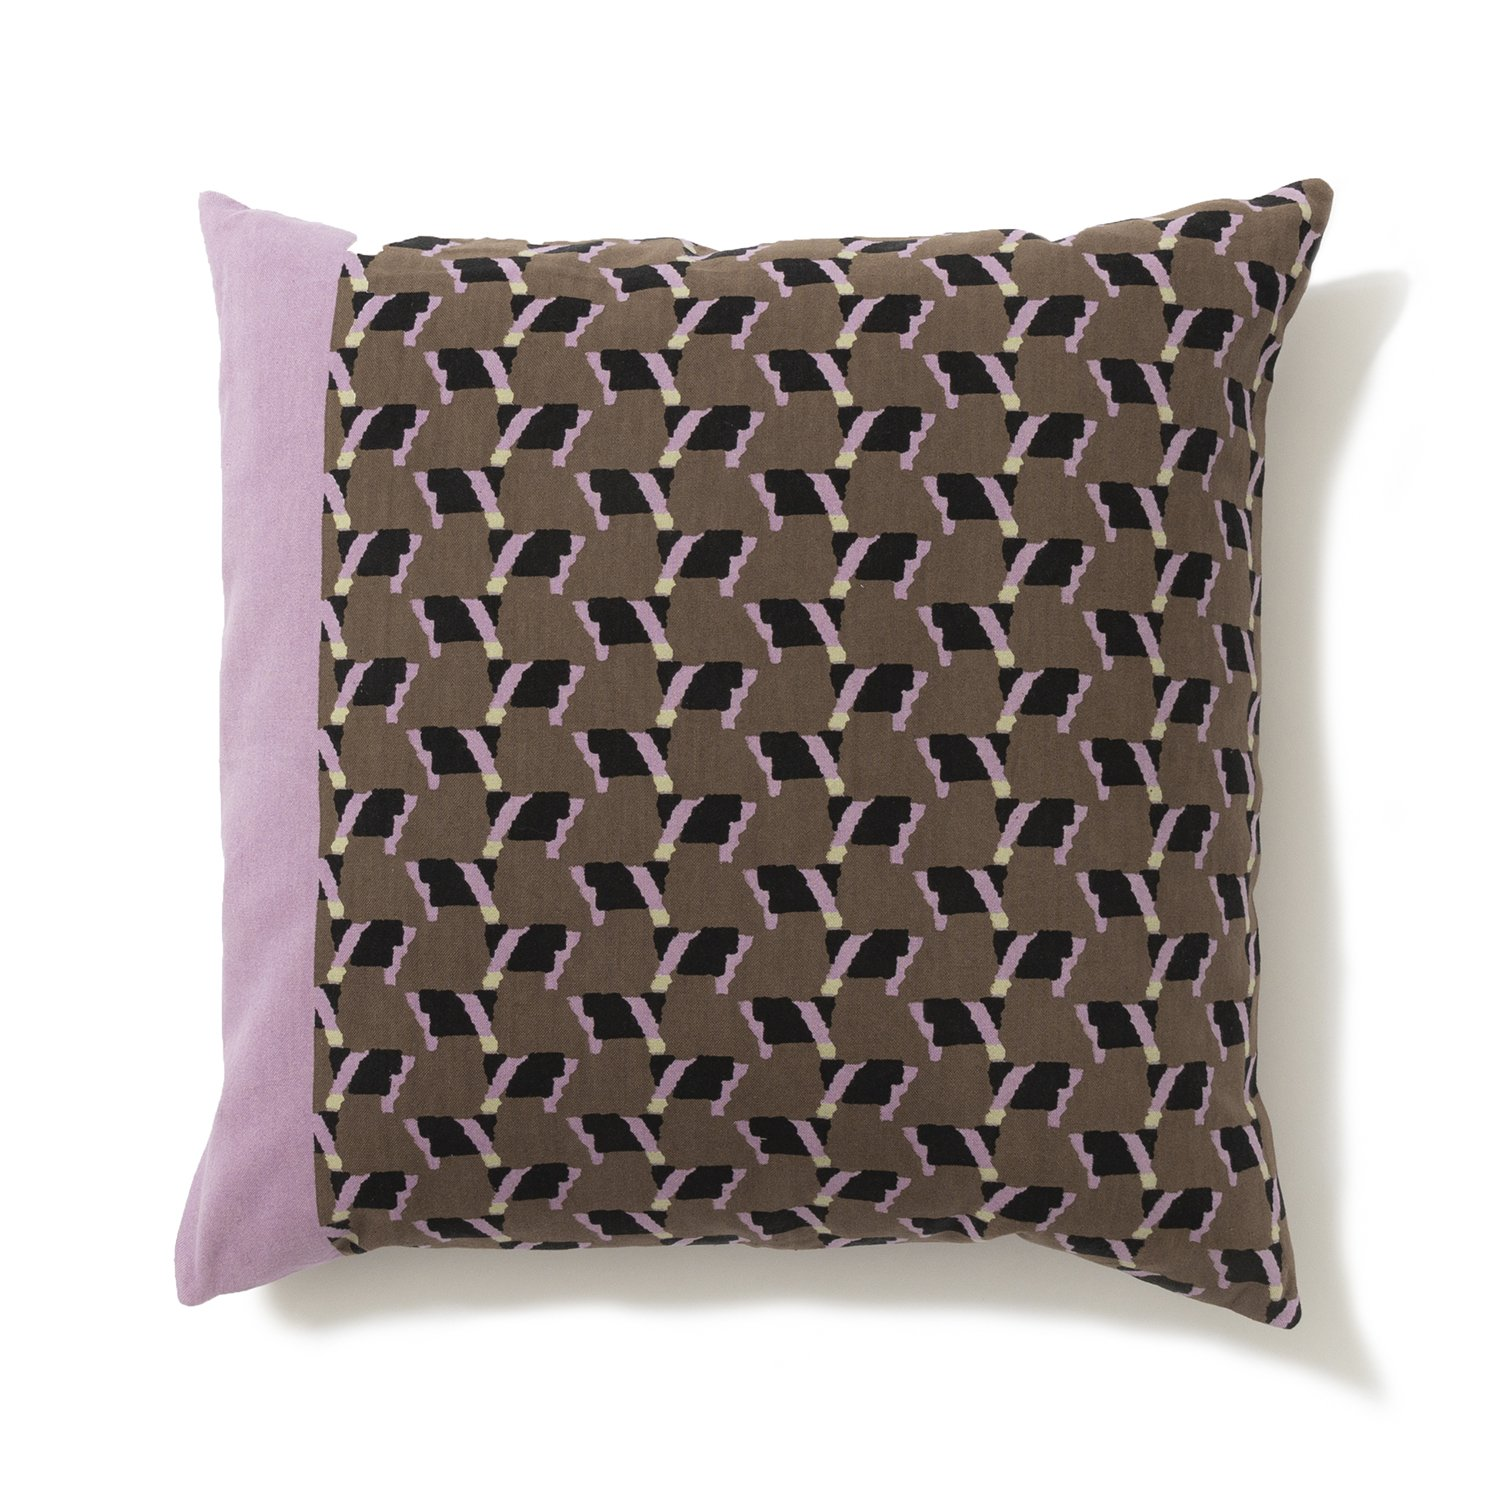 Sweet 1 square cushion cover